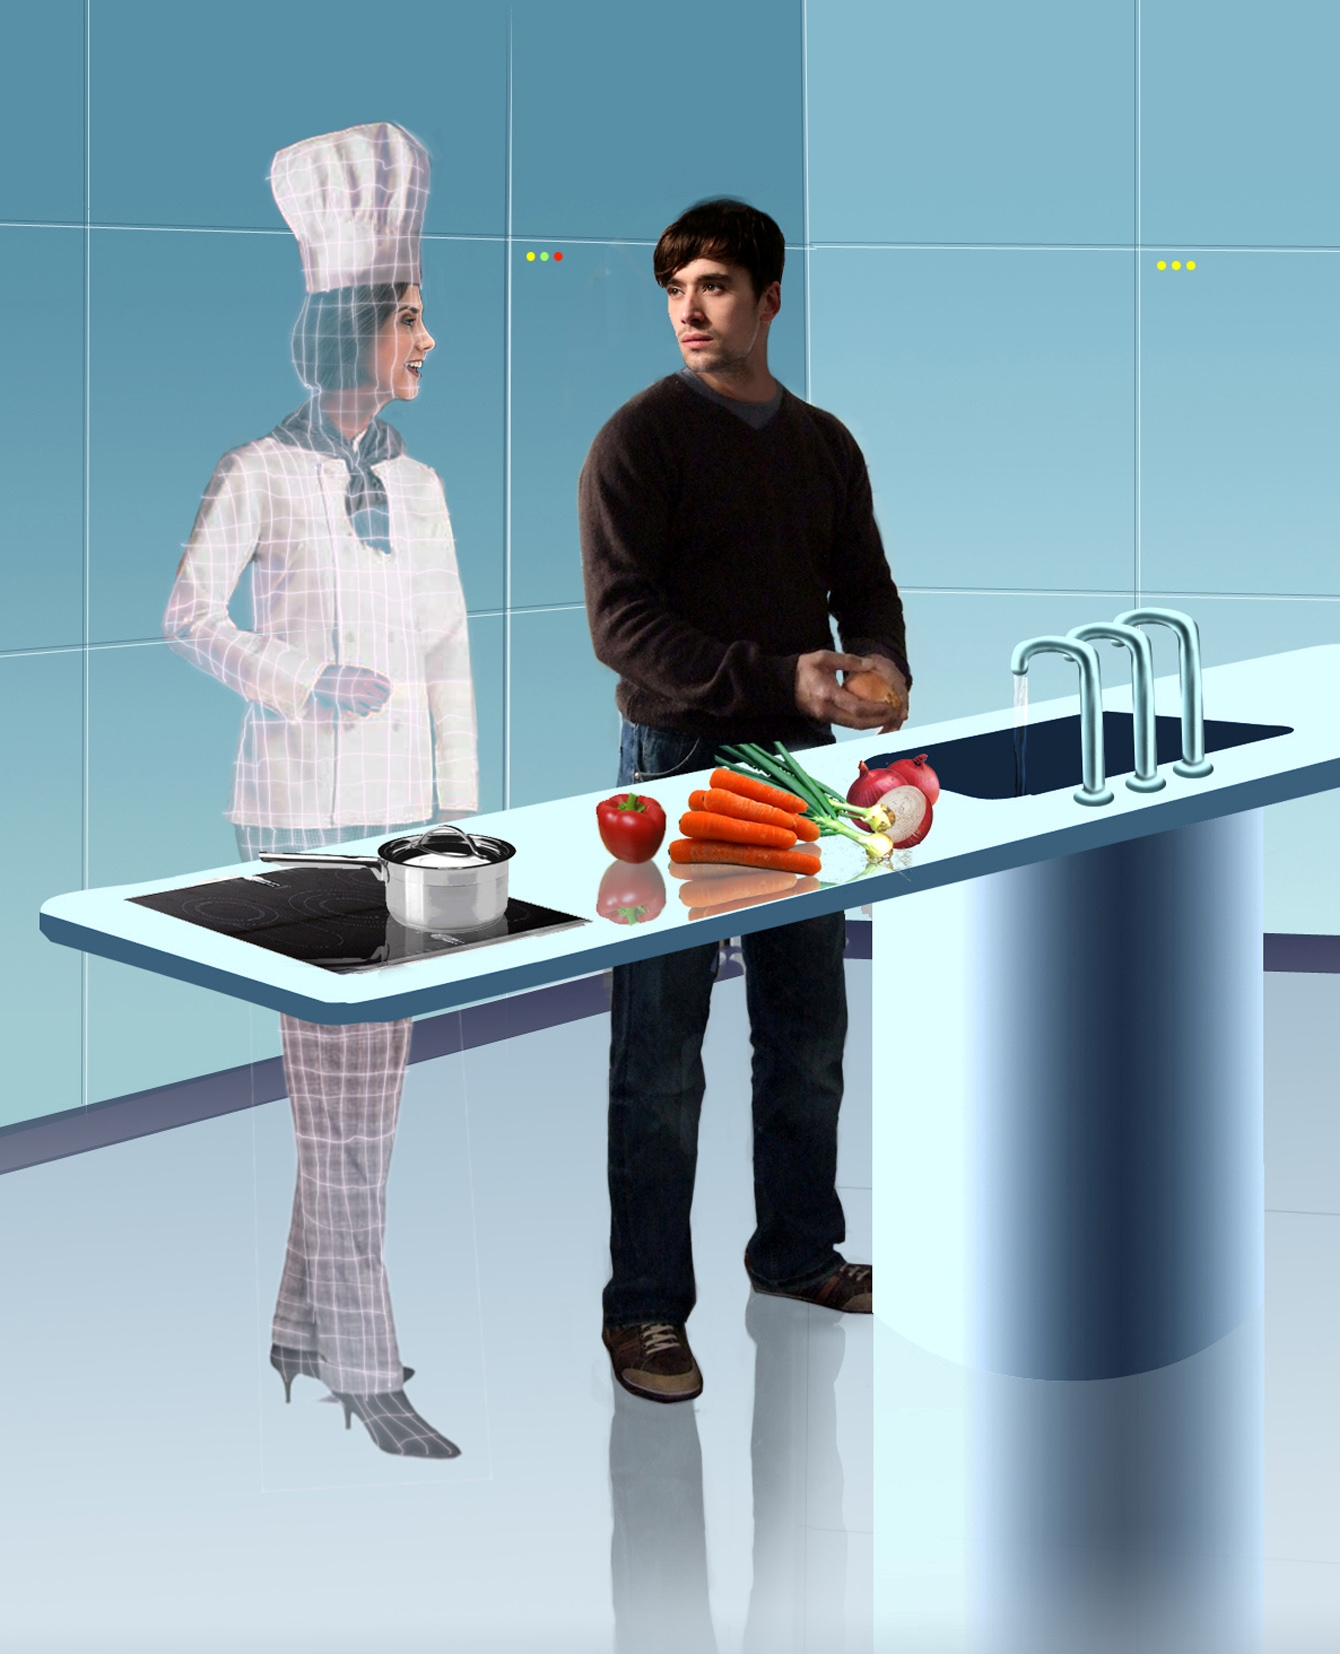 IDIOT TOYS: Tech news for the bored: The kitchen... OF THE FUTURE